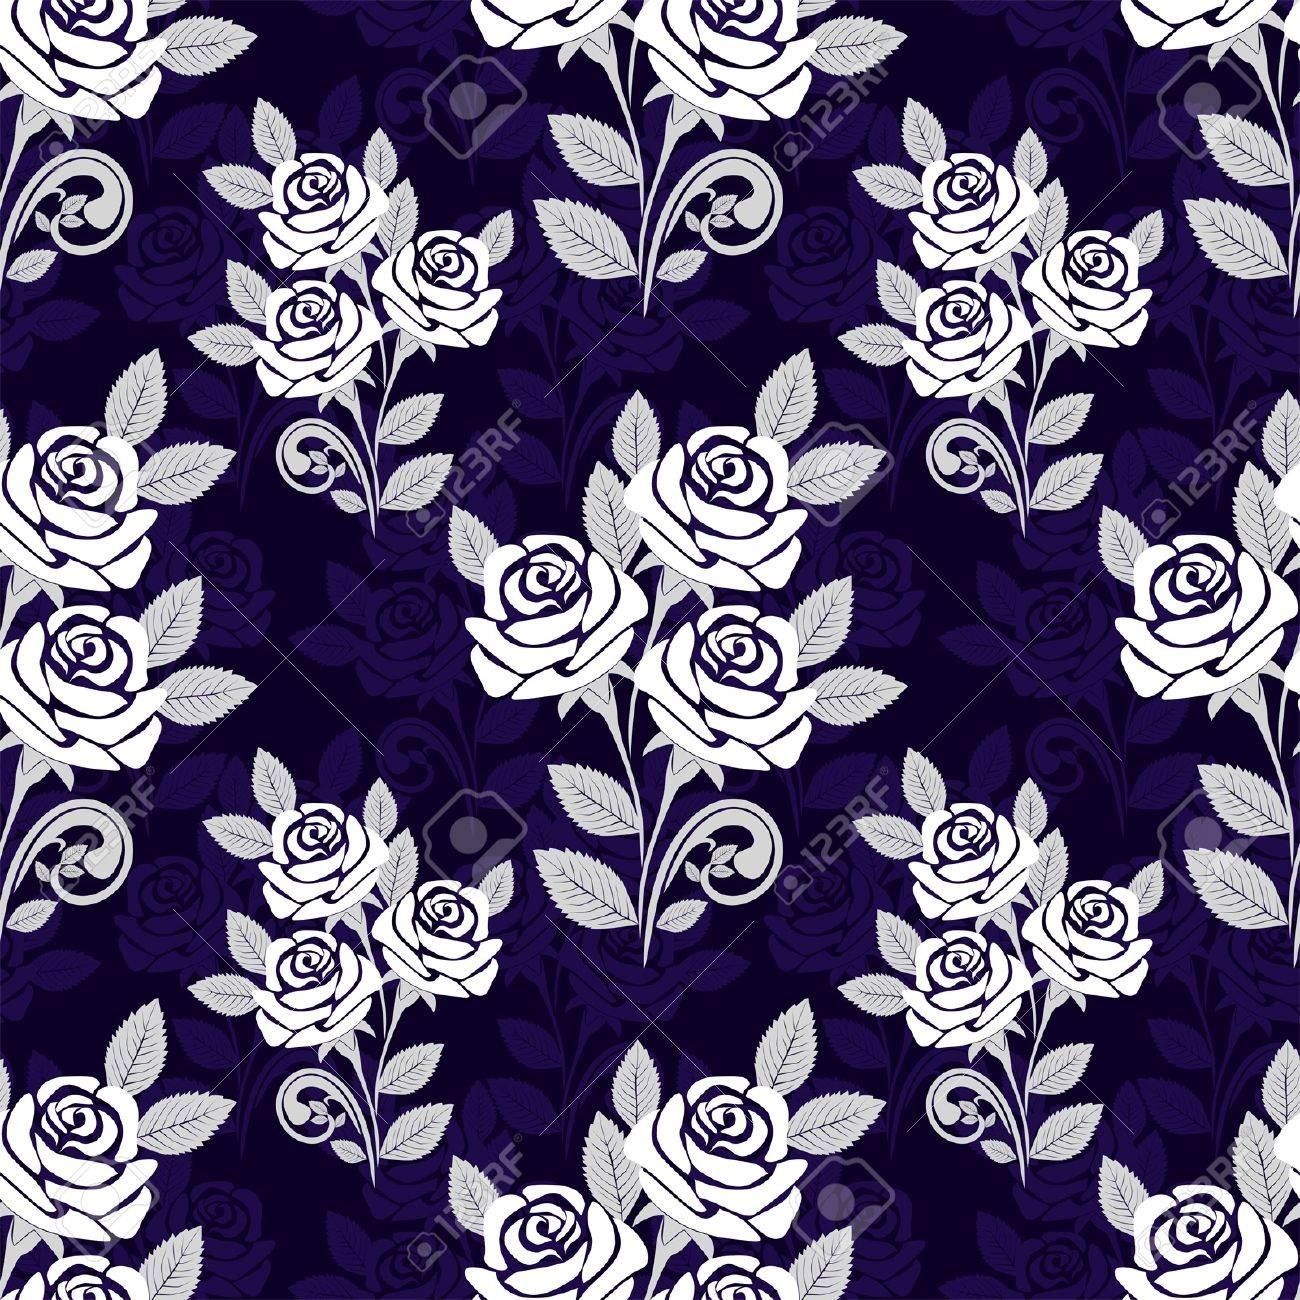 Seamless pattern with white roses on a dark blue background - 18848513